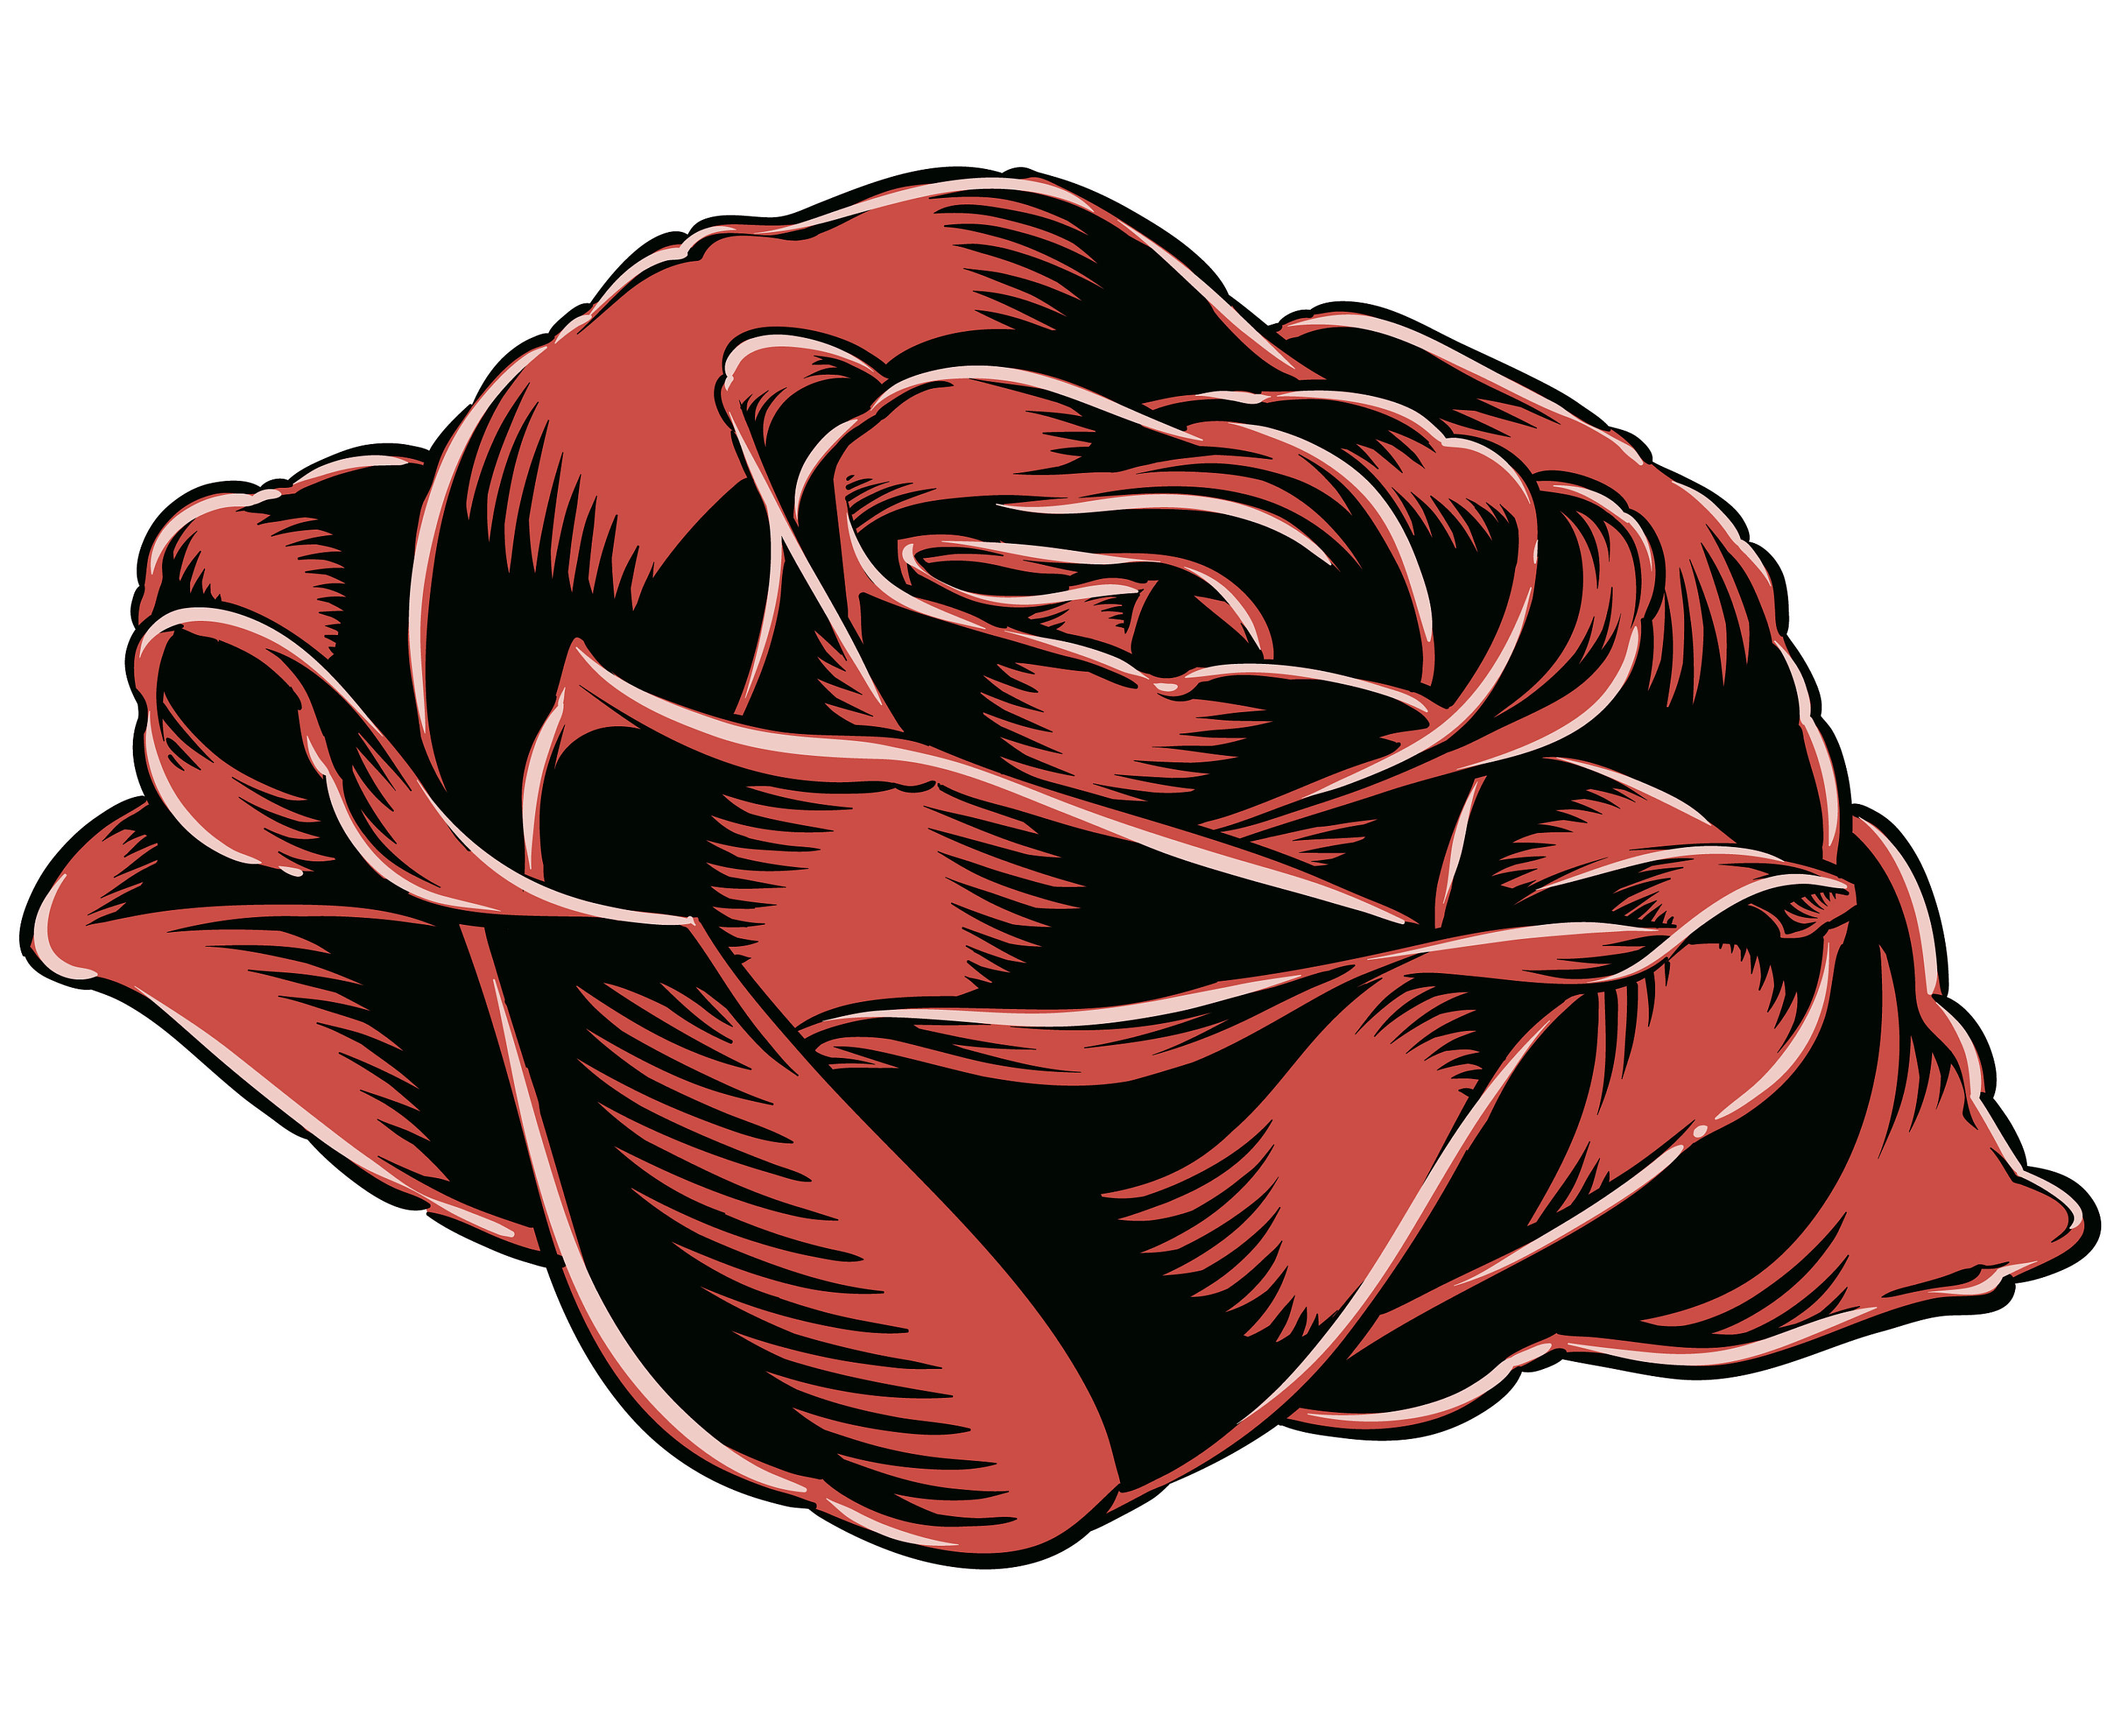 The best free Rose silhouette images. Download from 554 free silhouettes of Rose at GetDrawings